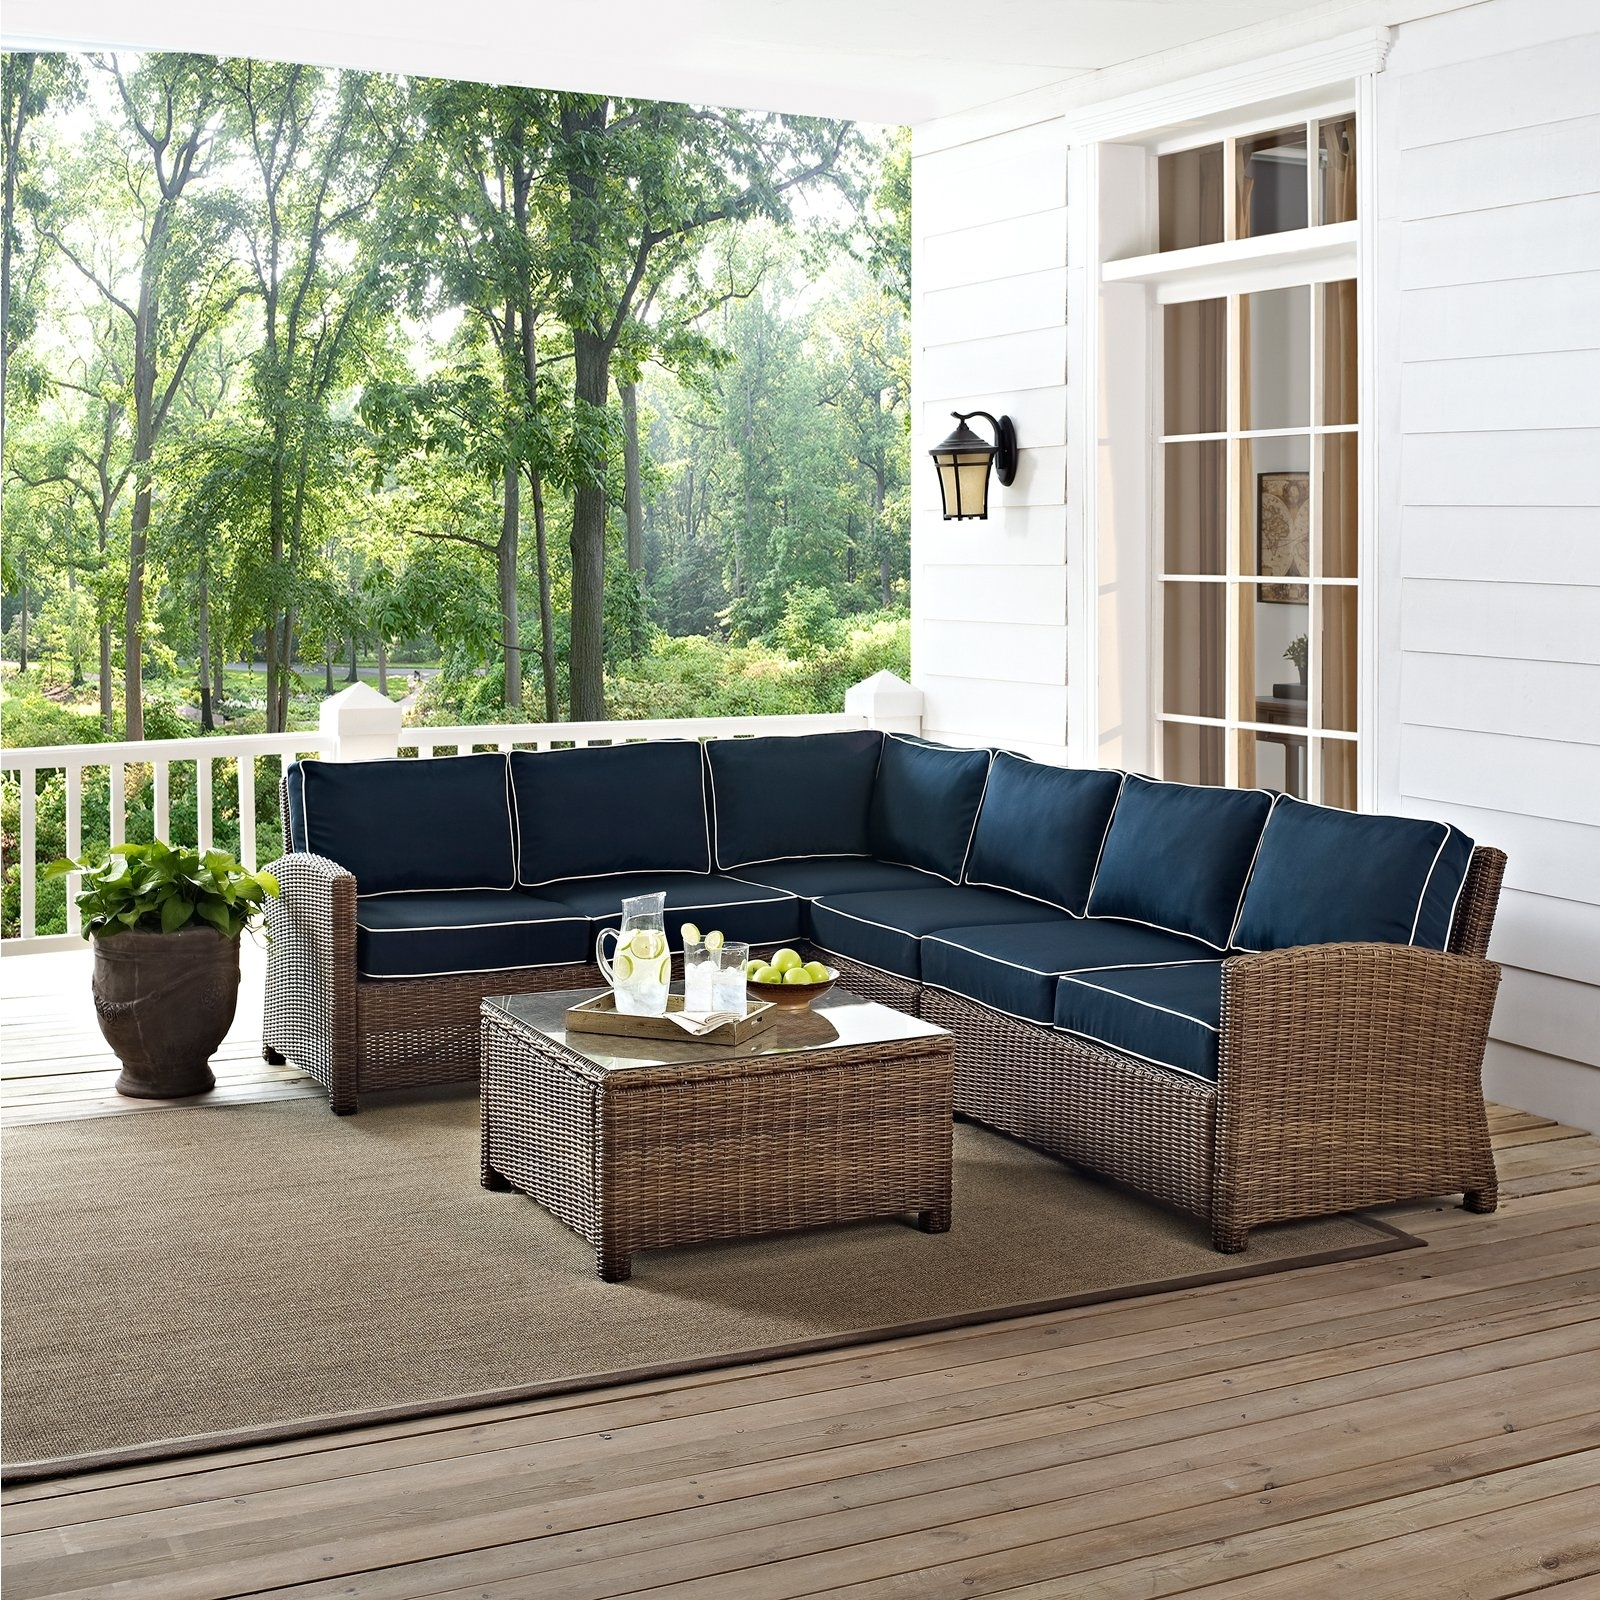 Current Wicker 4Pc Patio Conversation Sets With Navy Cushions Throughout Crosley Bradenton 5 Piece Outdoor Wicker Sectional Conversation Set (View 9 of 15)